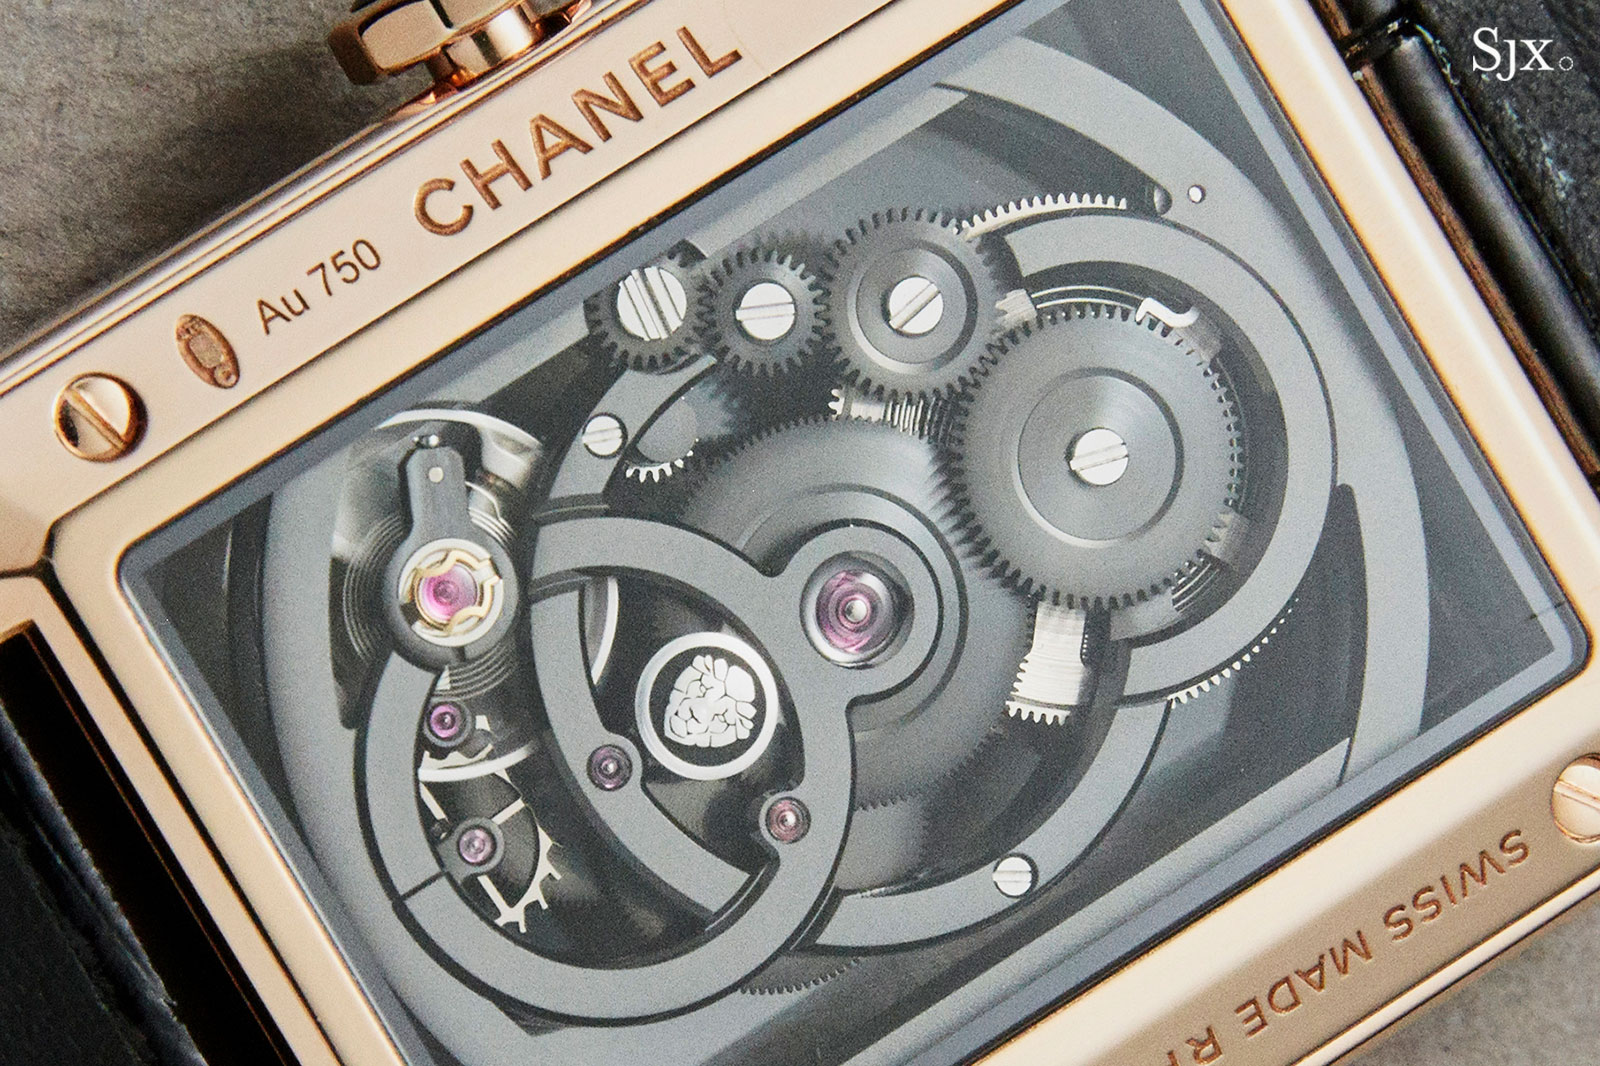 Chanel Boy.Friend Skeleton watch 4